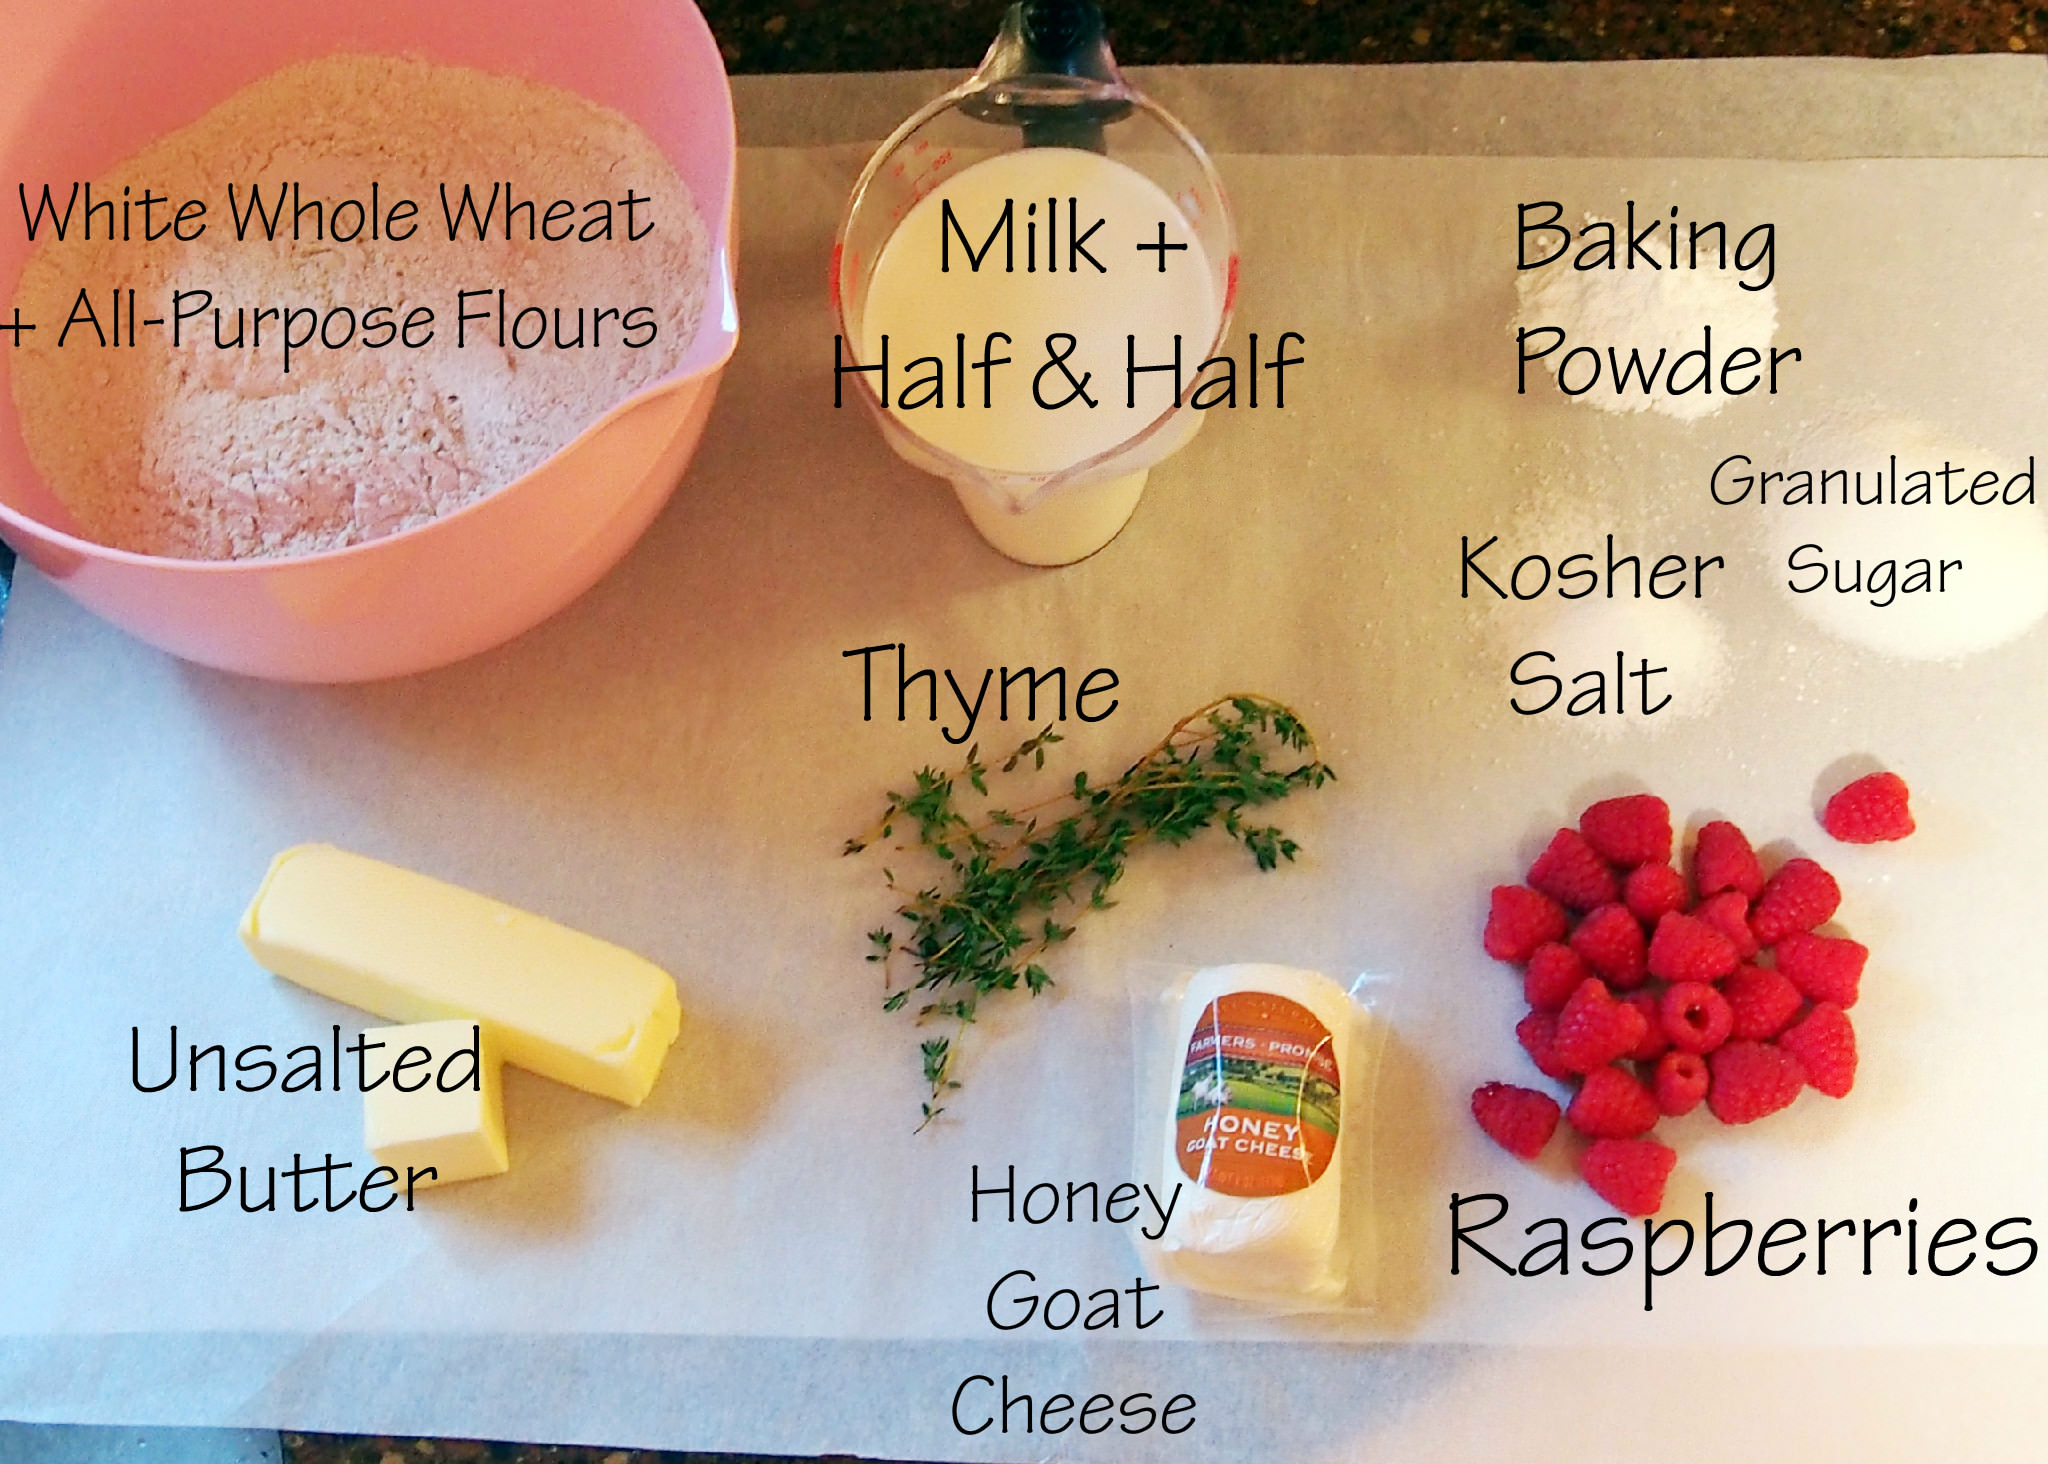 Ingredients needed to make Rosemary, Thyme, Goat Cheese Biscuits